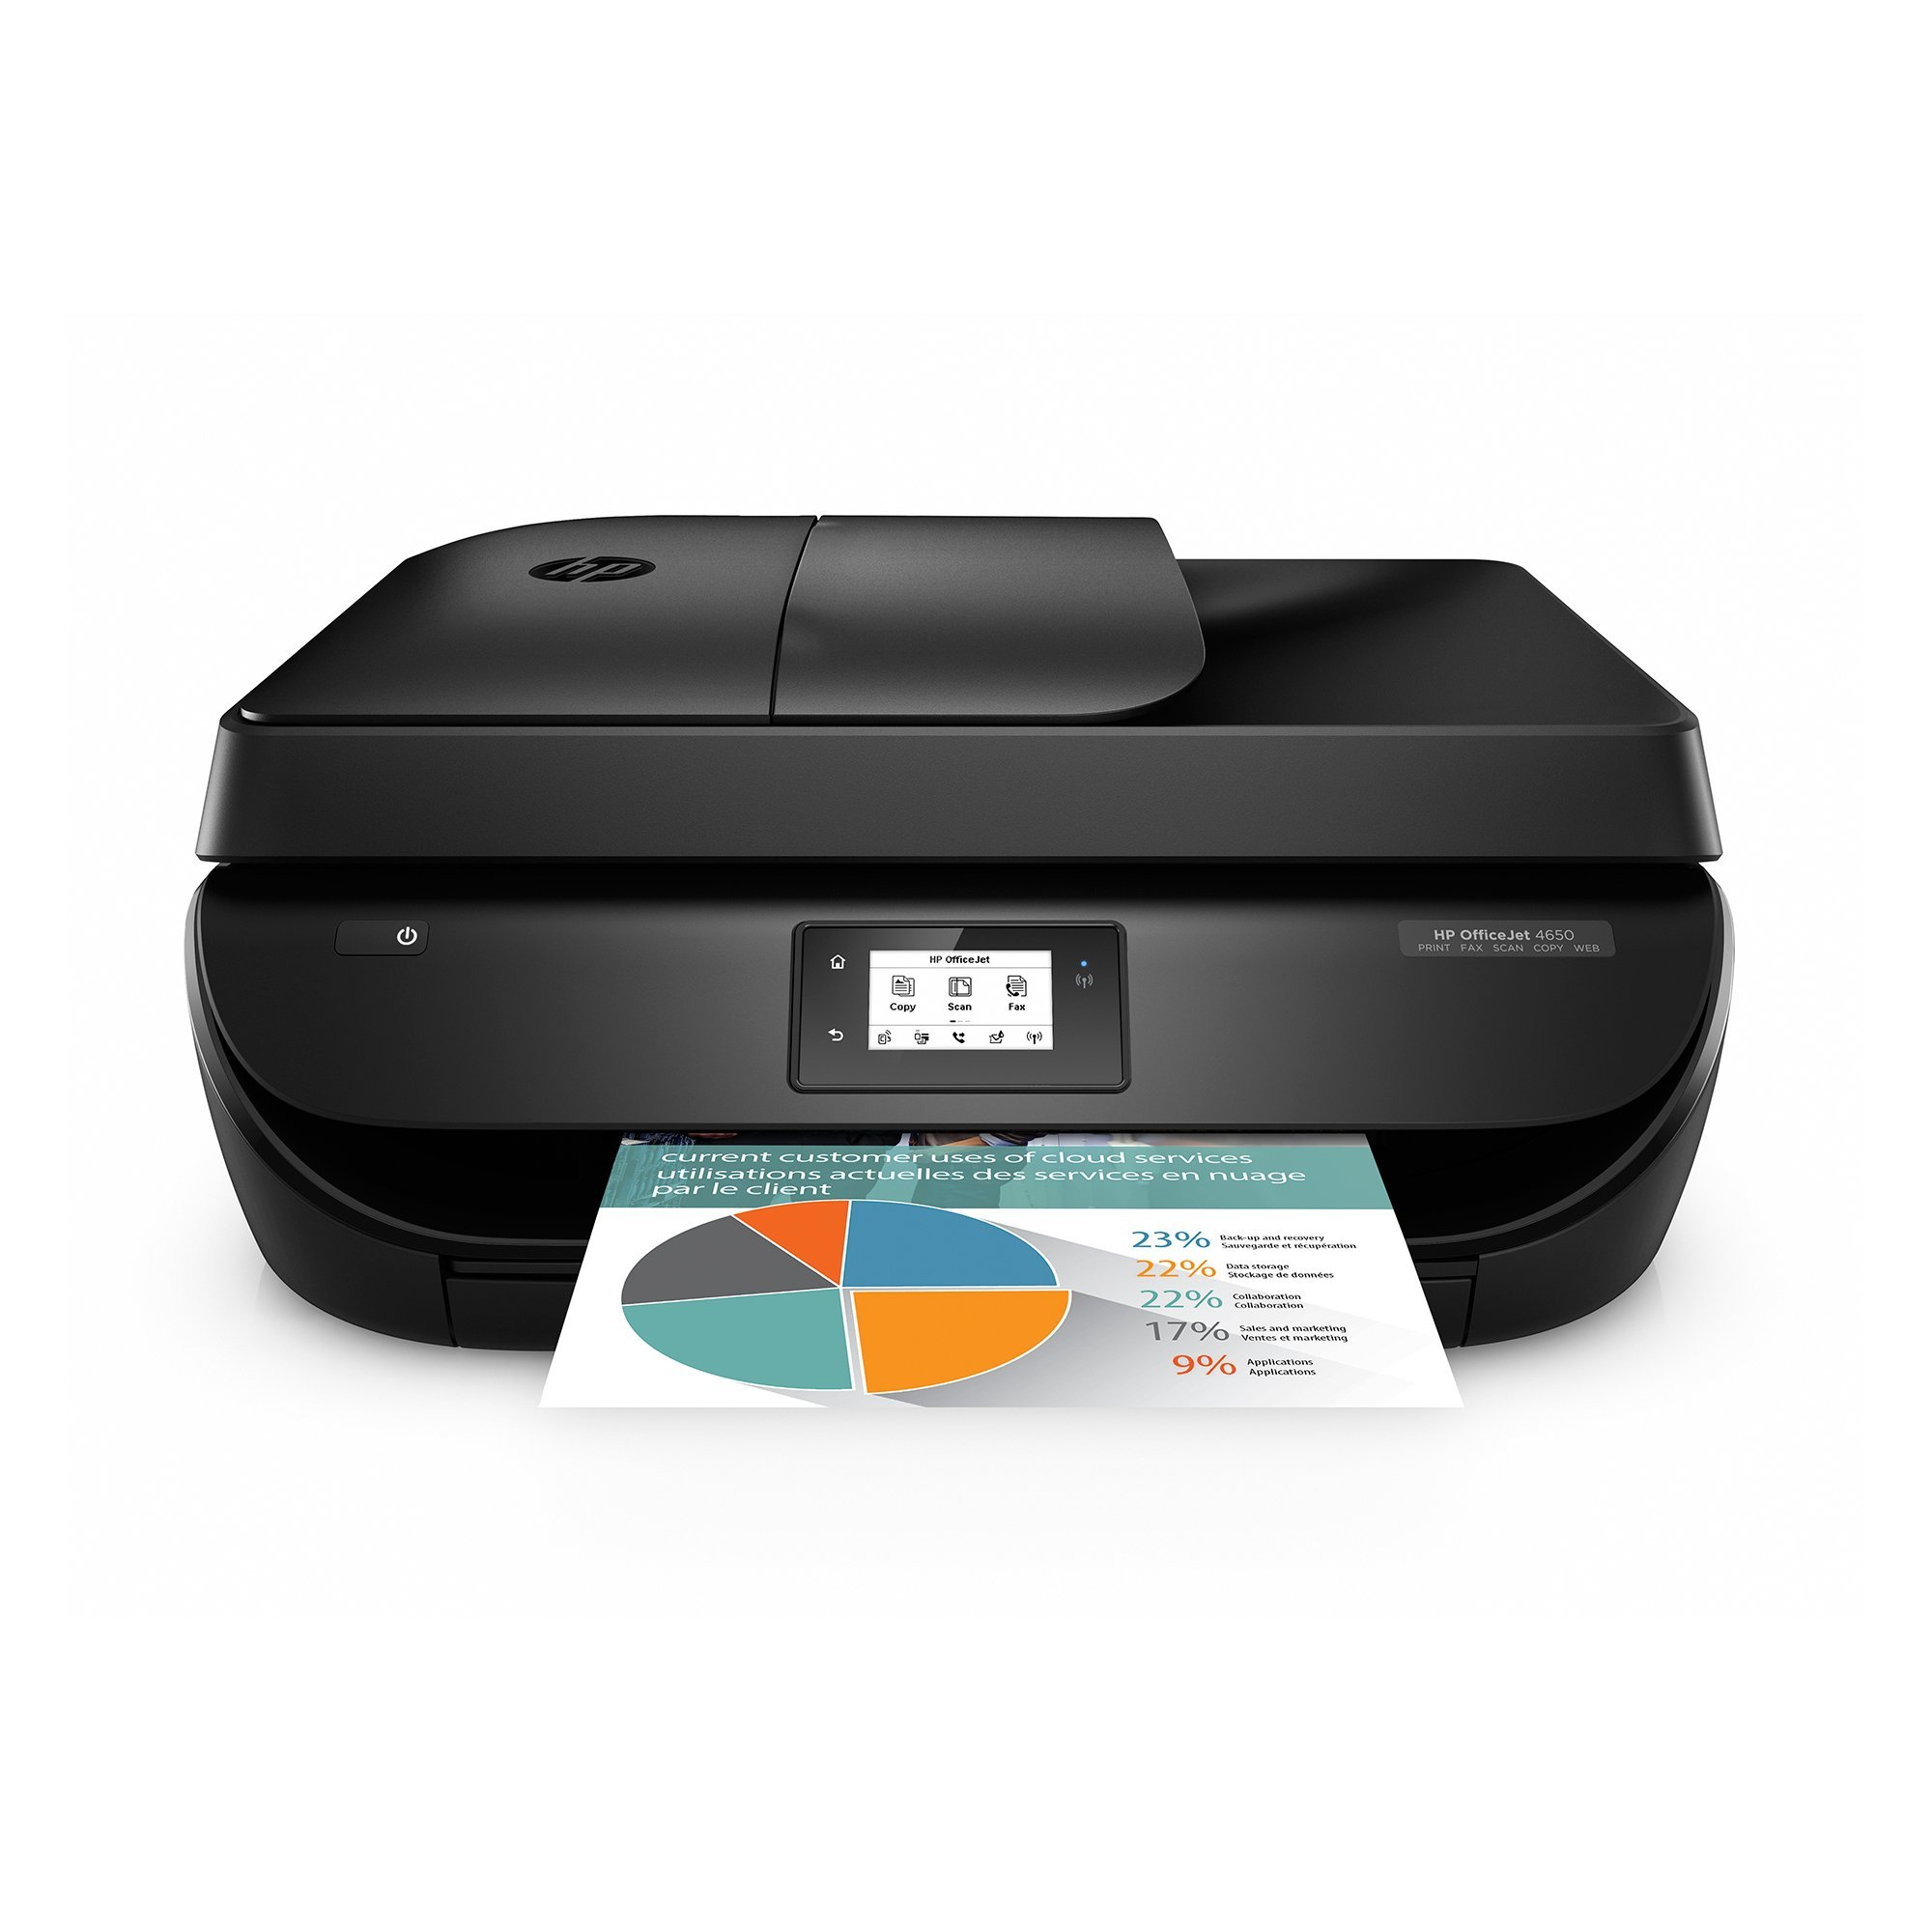 HP HP4650-RB-AMZ Office Jet 4650 Wireless All-in-One Photo Printer, Copier and Scanner - Black (Renewed), Black & Color by HP